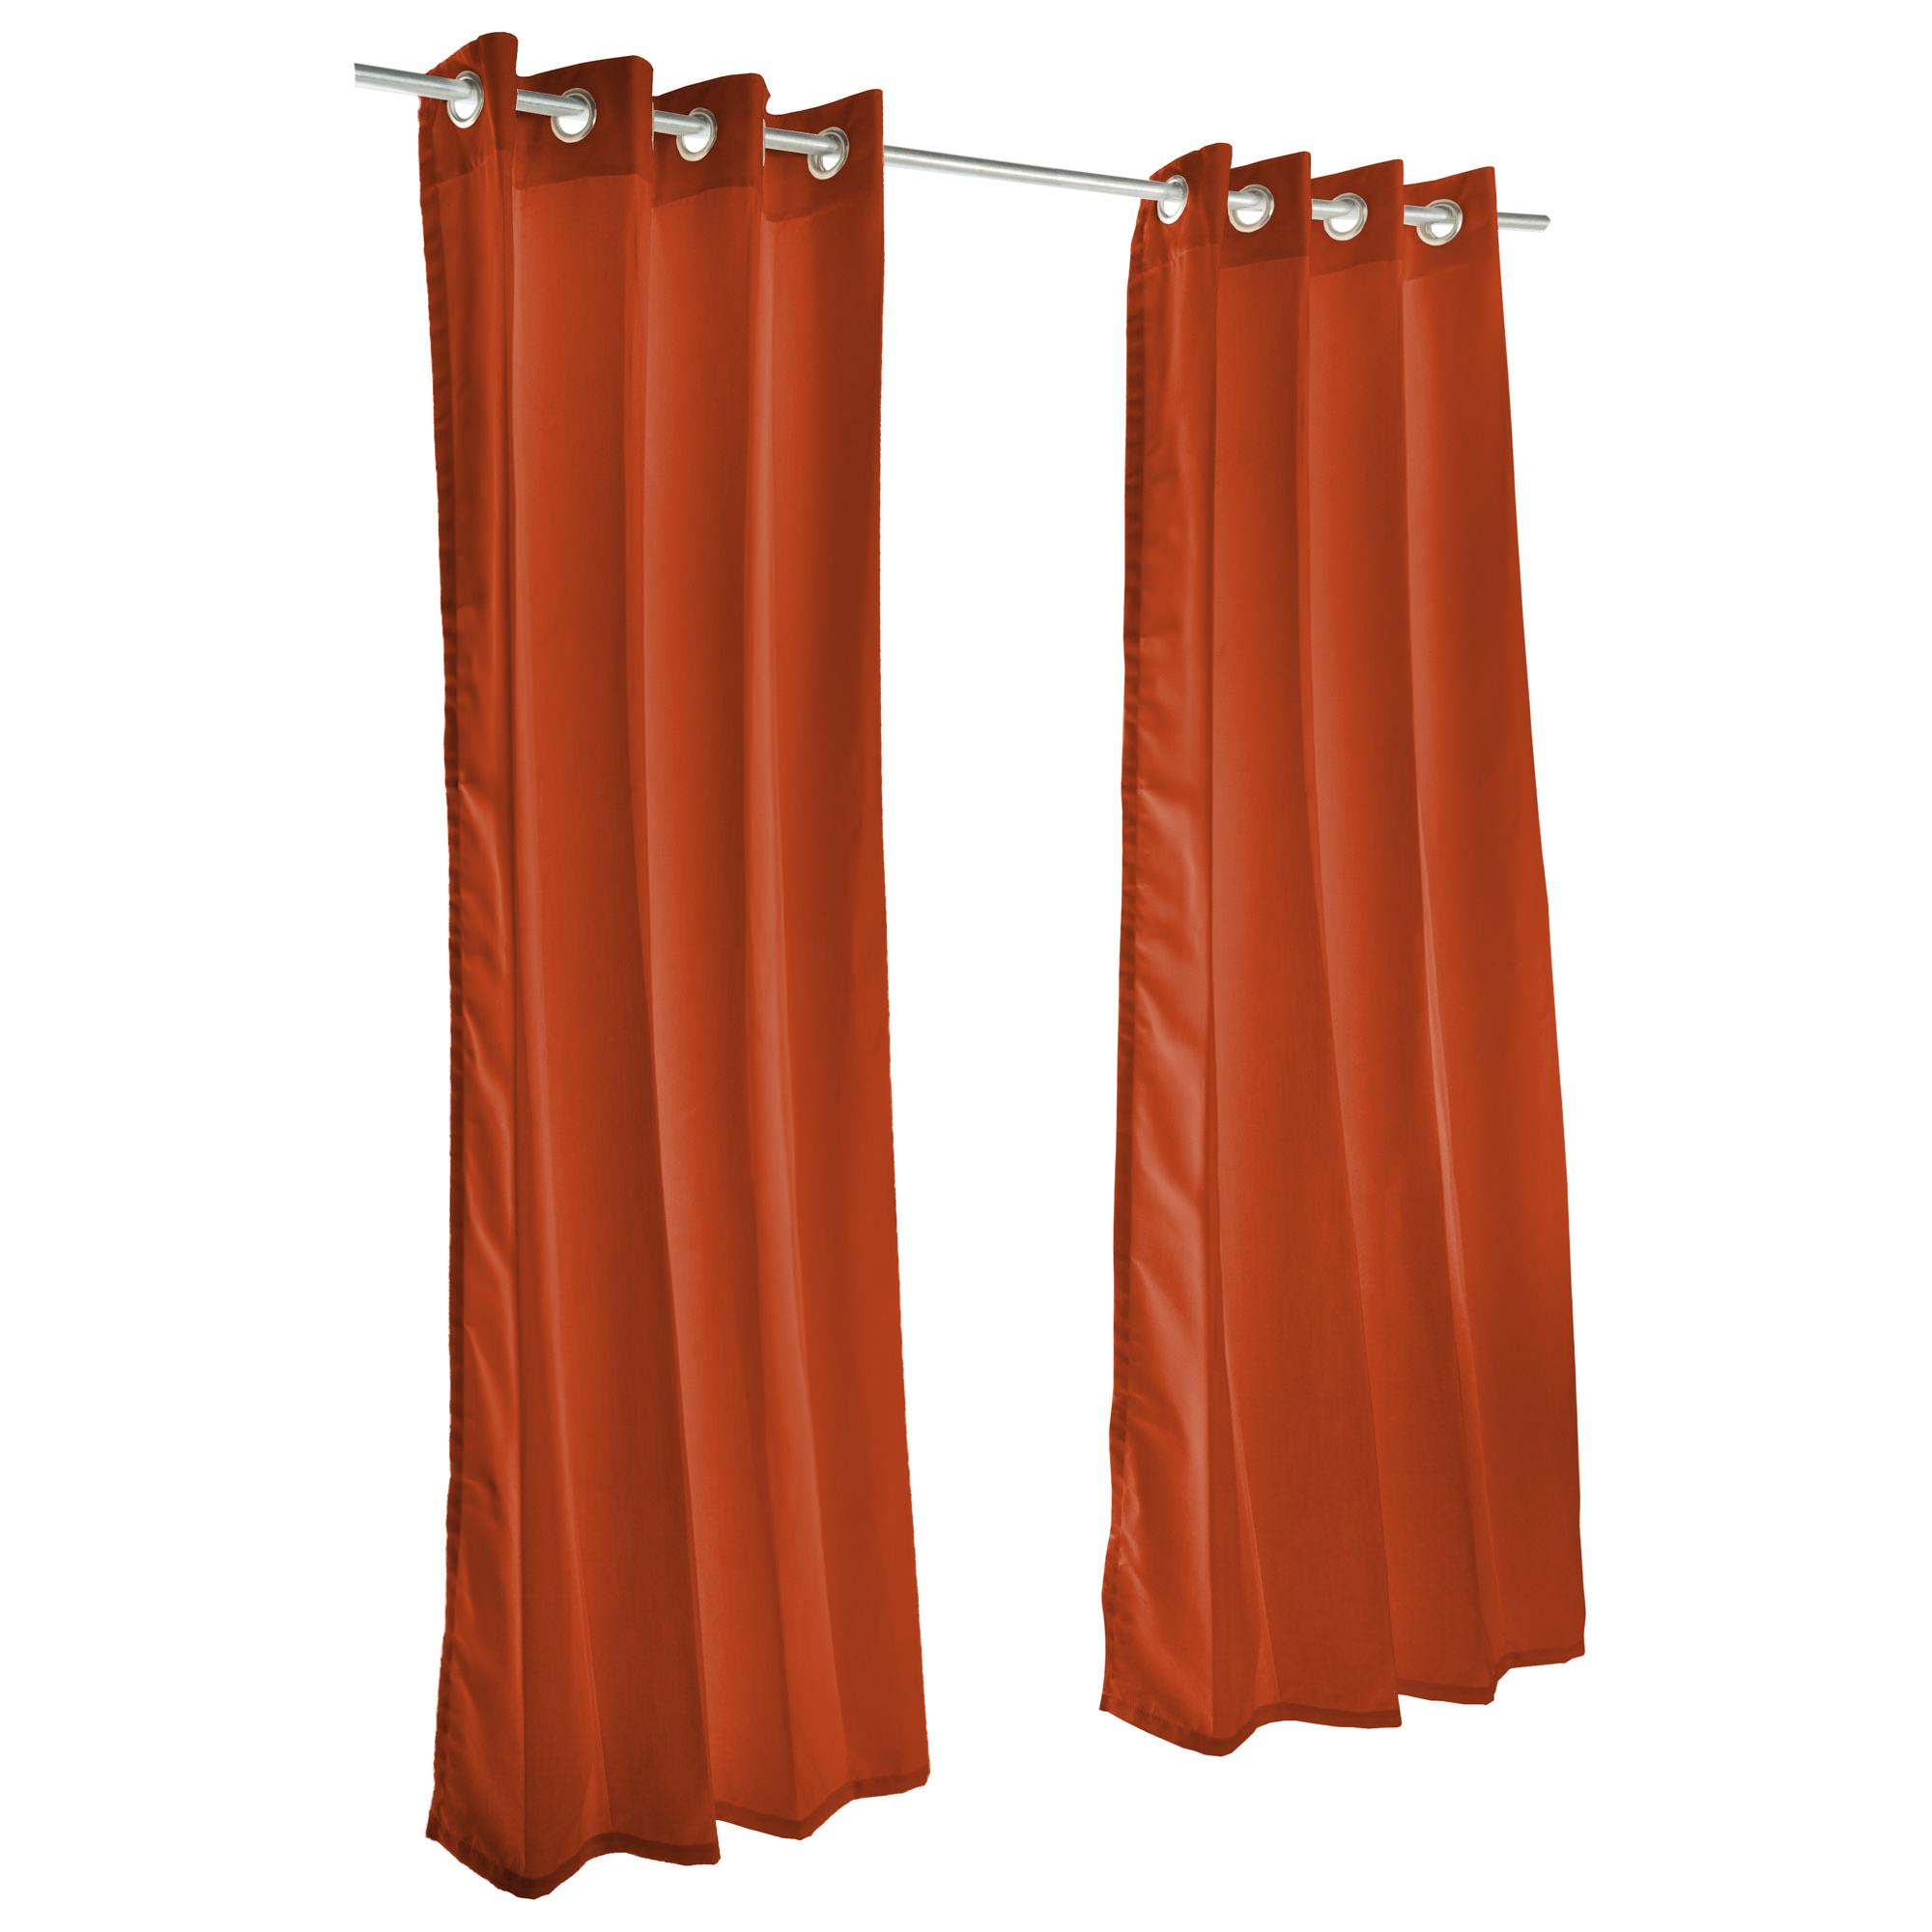 Canvas Brick Grommet Sunbrella Outdoor Curtains